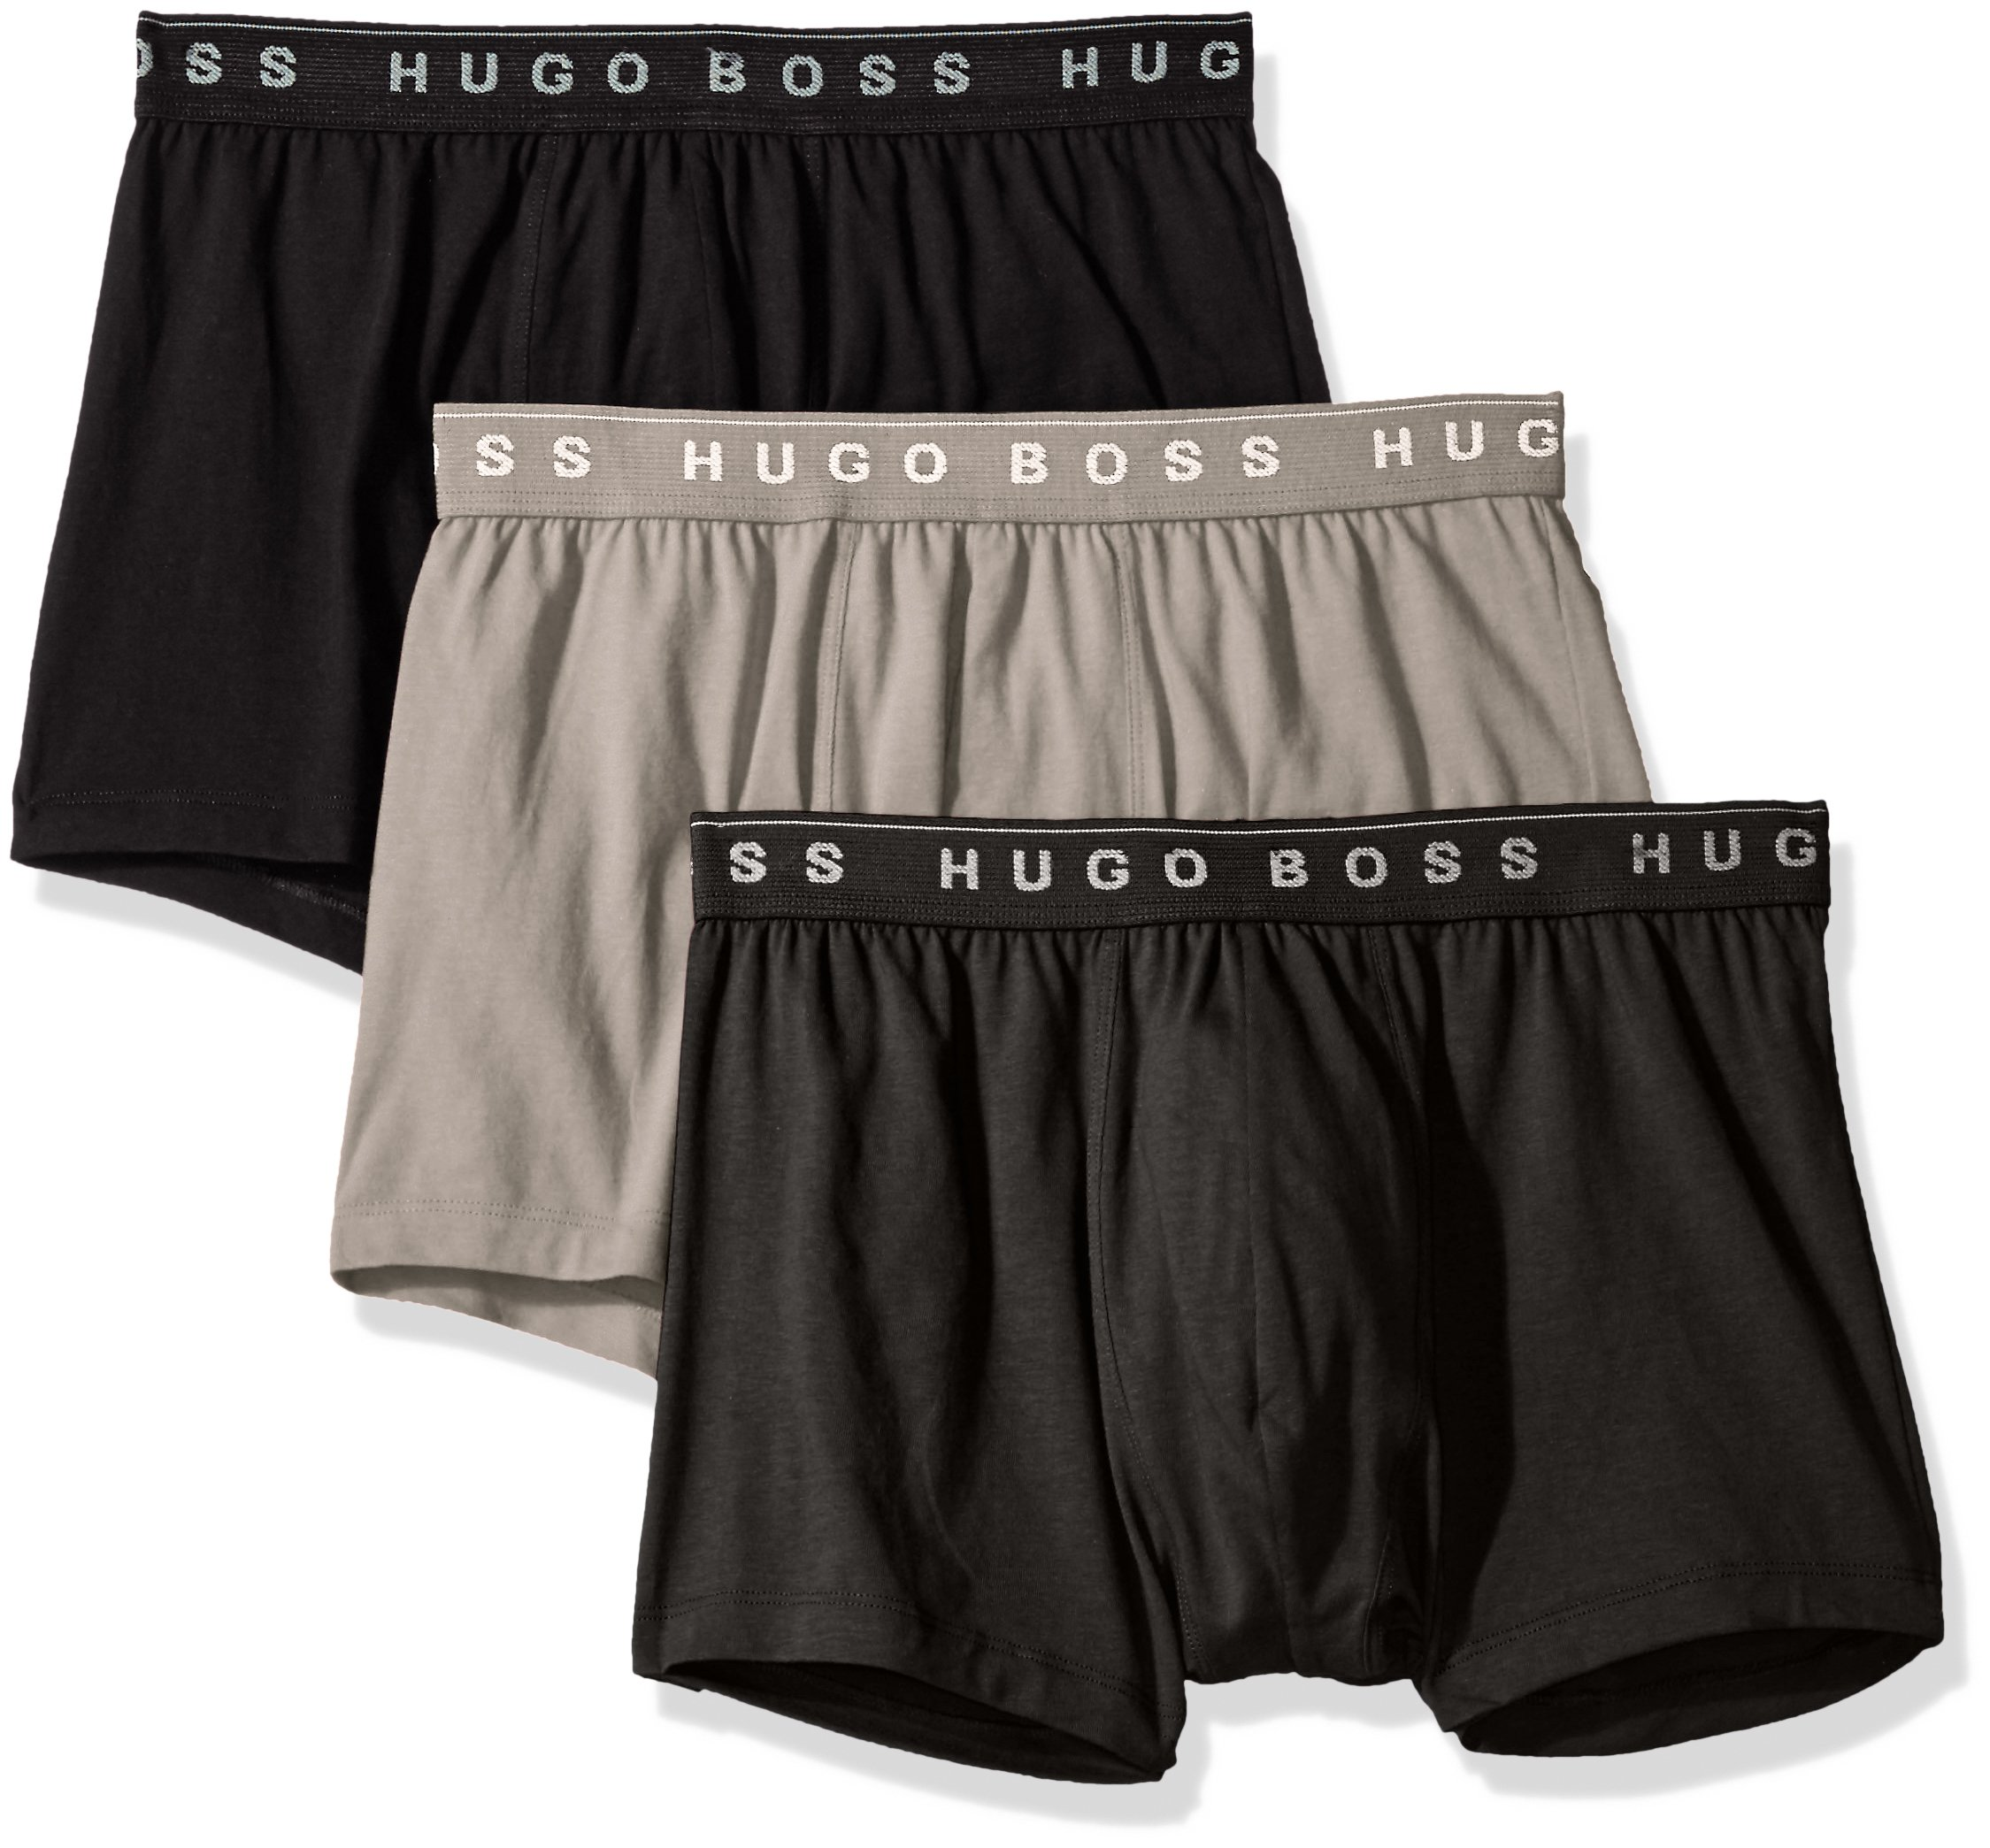 Hugo Boss BOSS Men's 3-Pack Cotton Trunk, New Grey/Charcoal/Black, Large